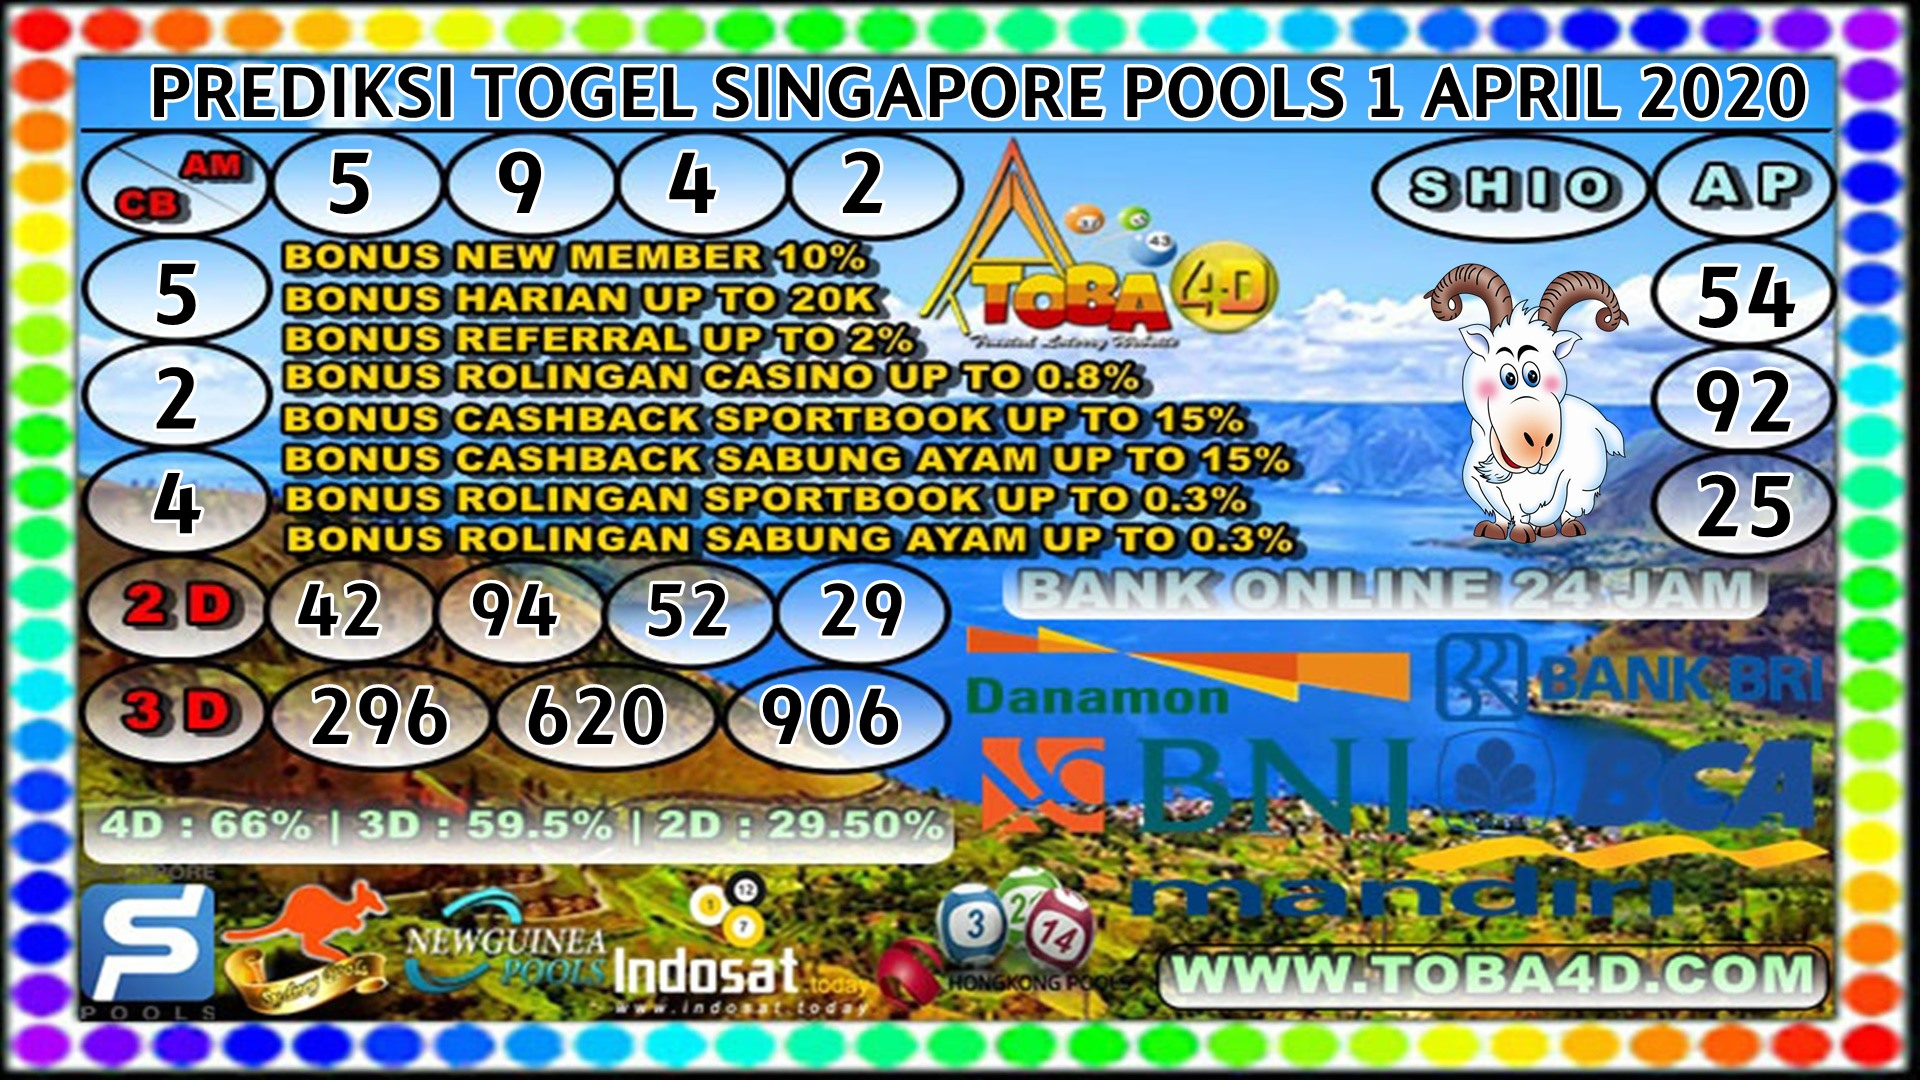 PREDIKSI TOGEL SINGAPORE POOLS 1 APRIL 2020